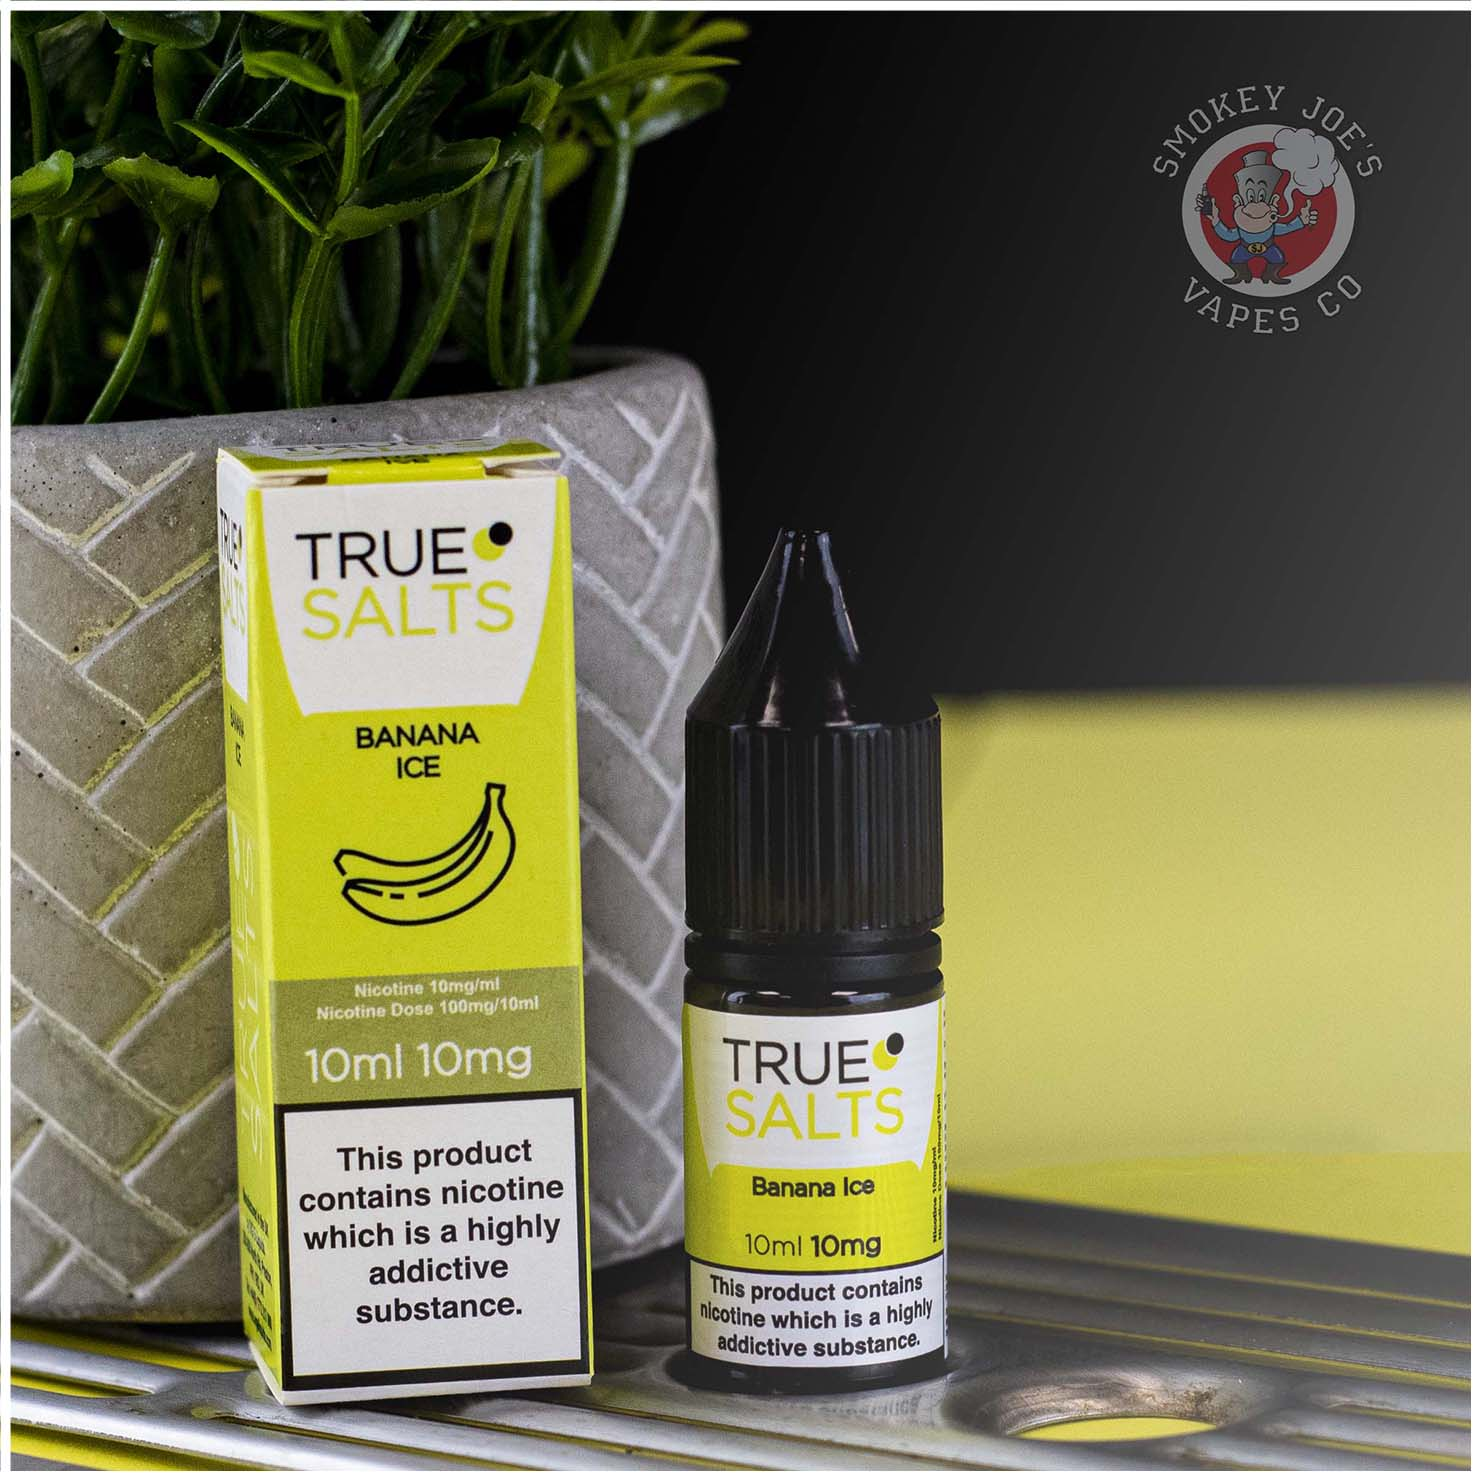 True Salts Ice Banana | Smokey Joes Vapes Co